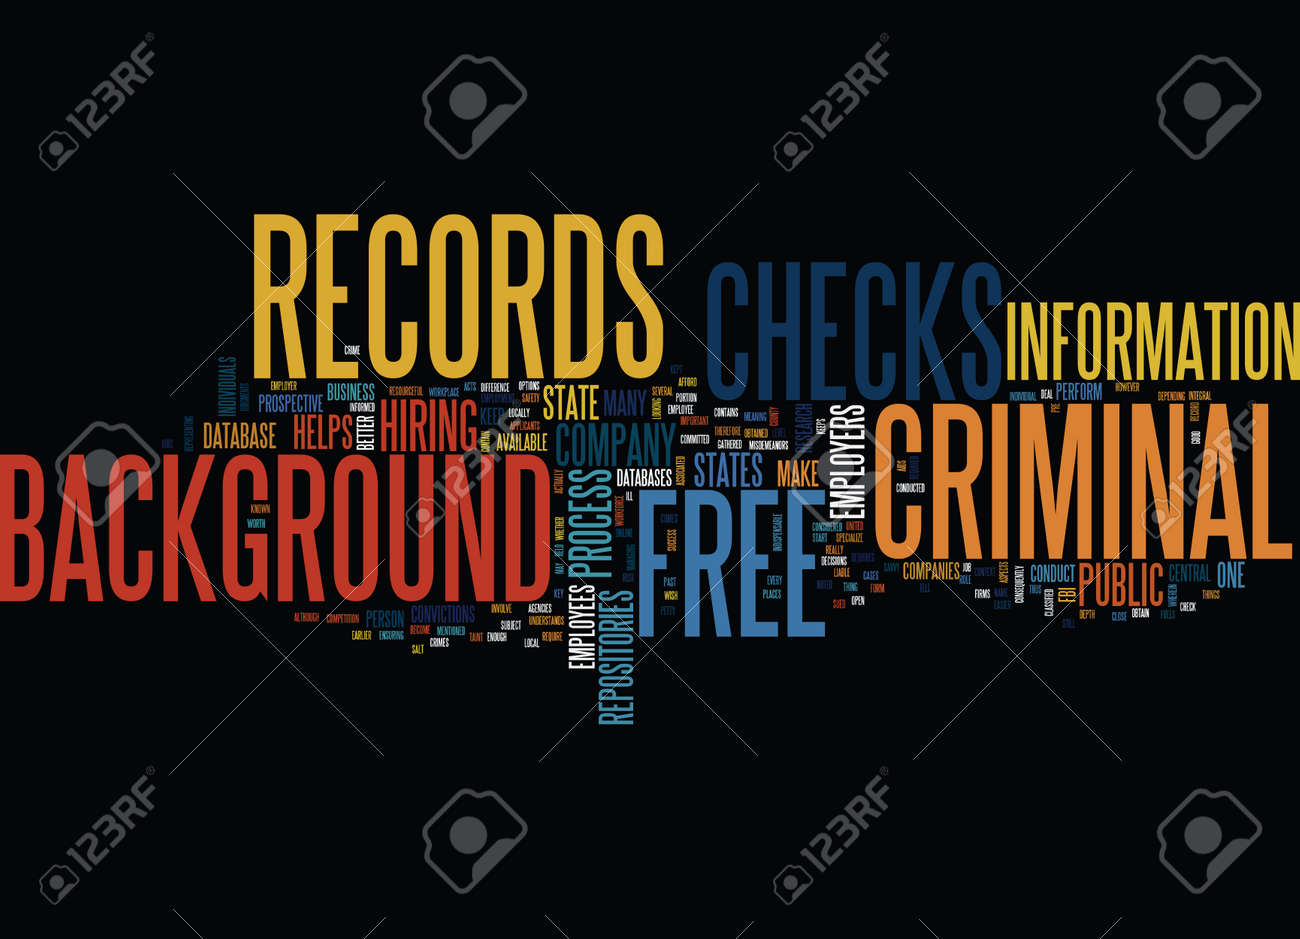 Background Check Free Criminal Record >> Free Criminal Records Background Checks Text Background Word